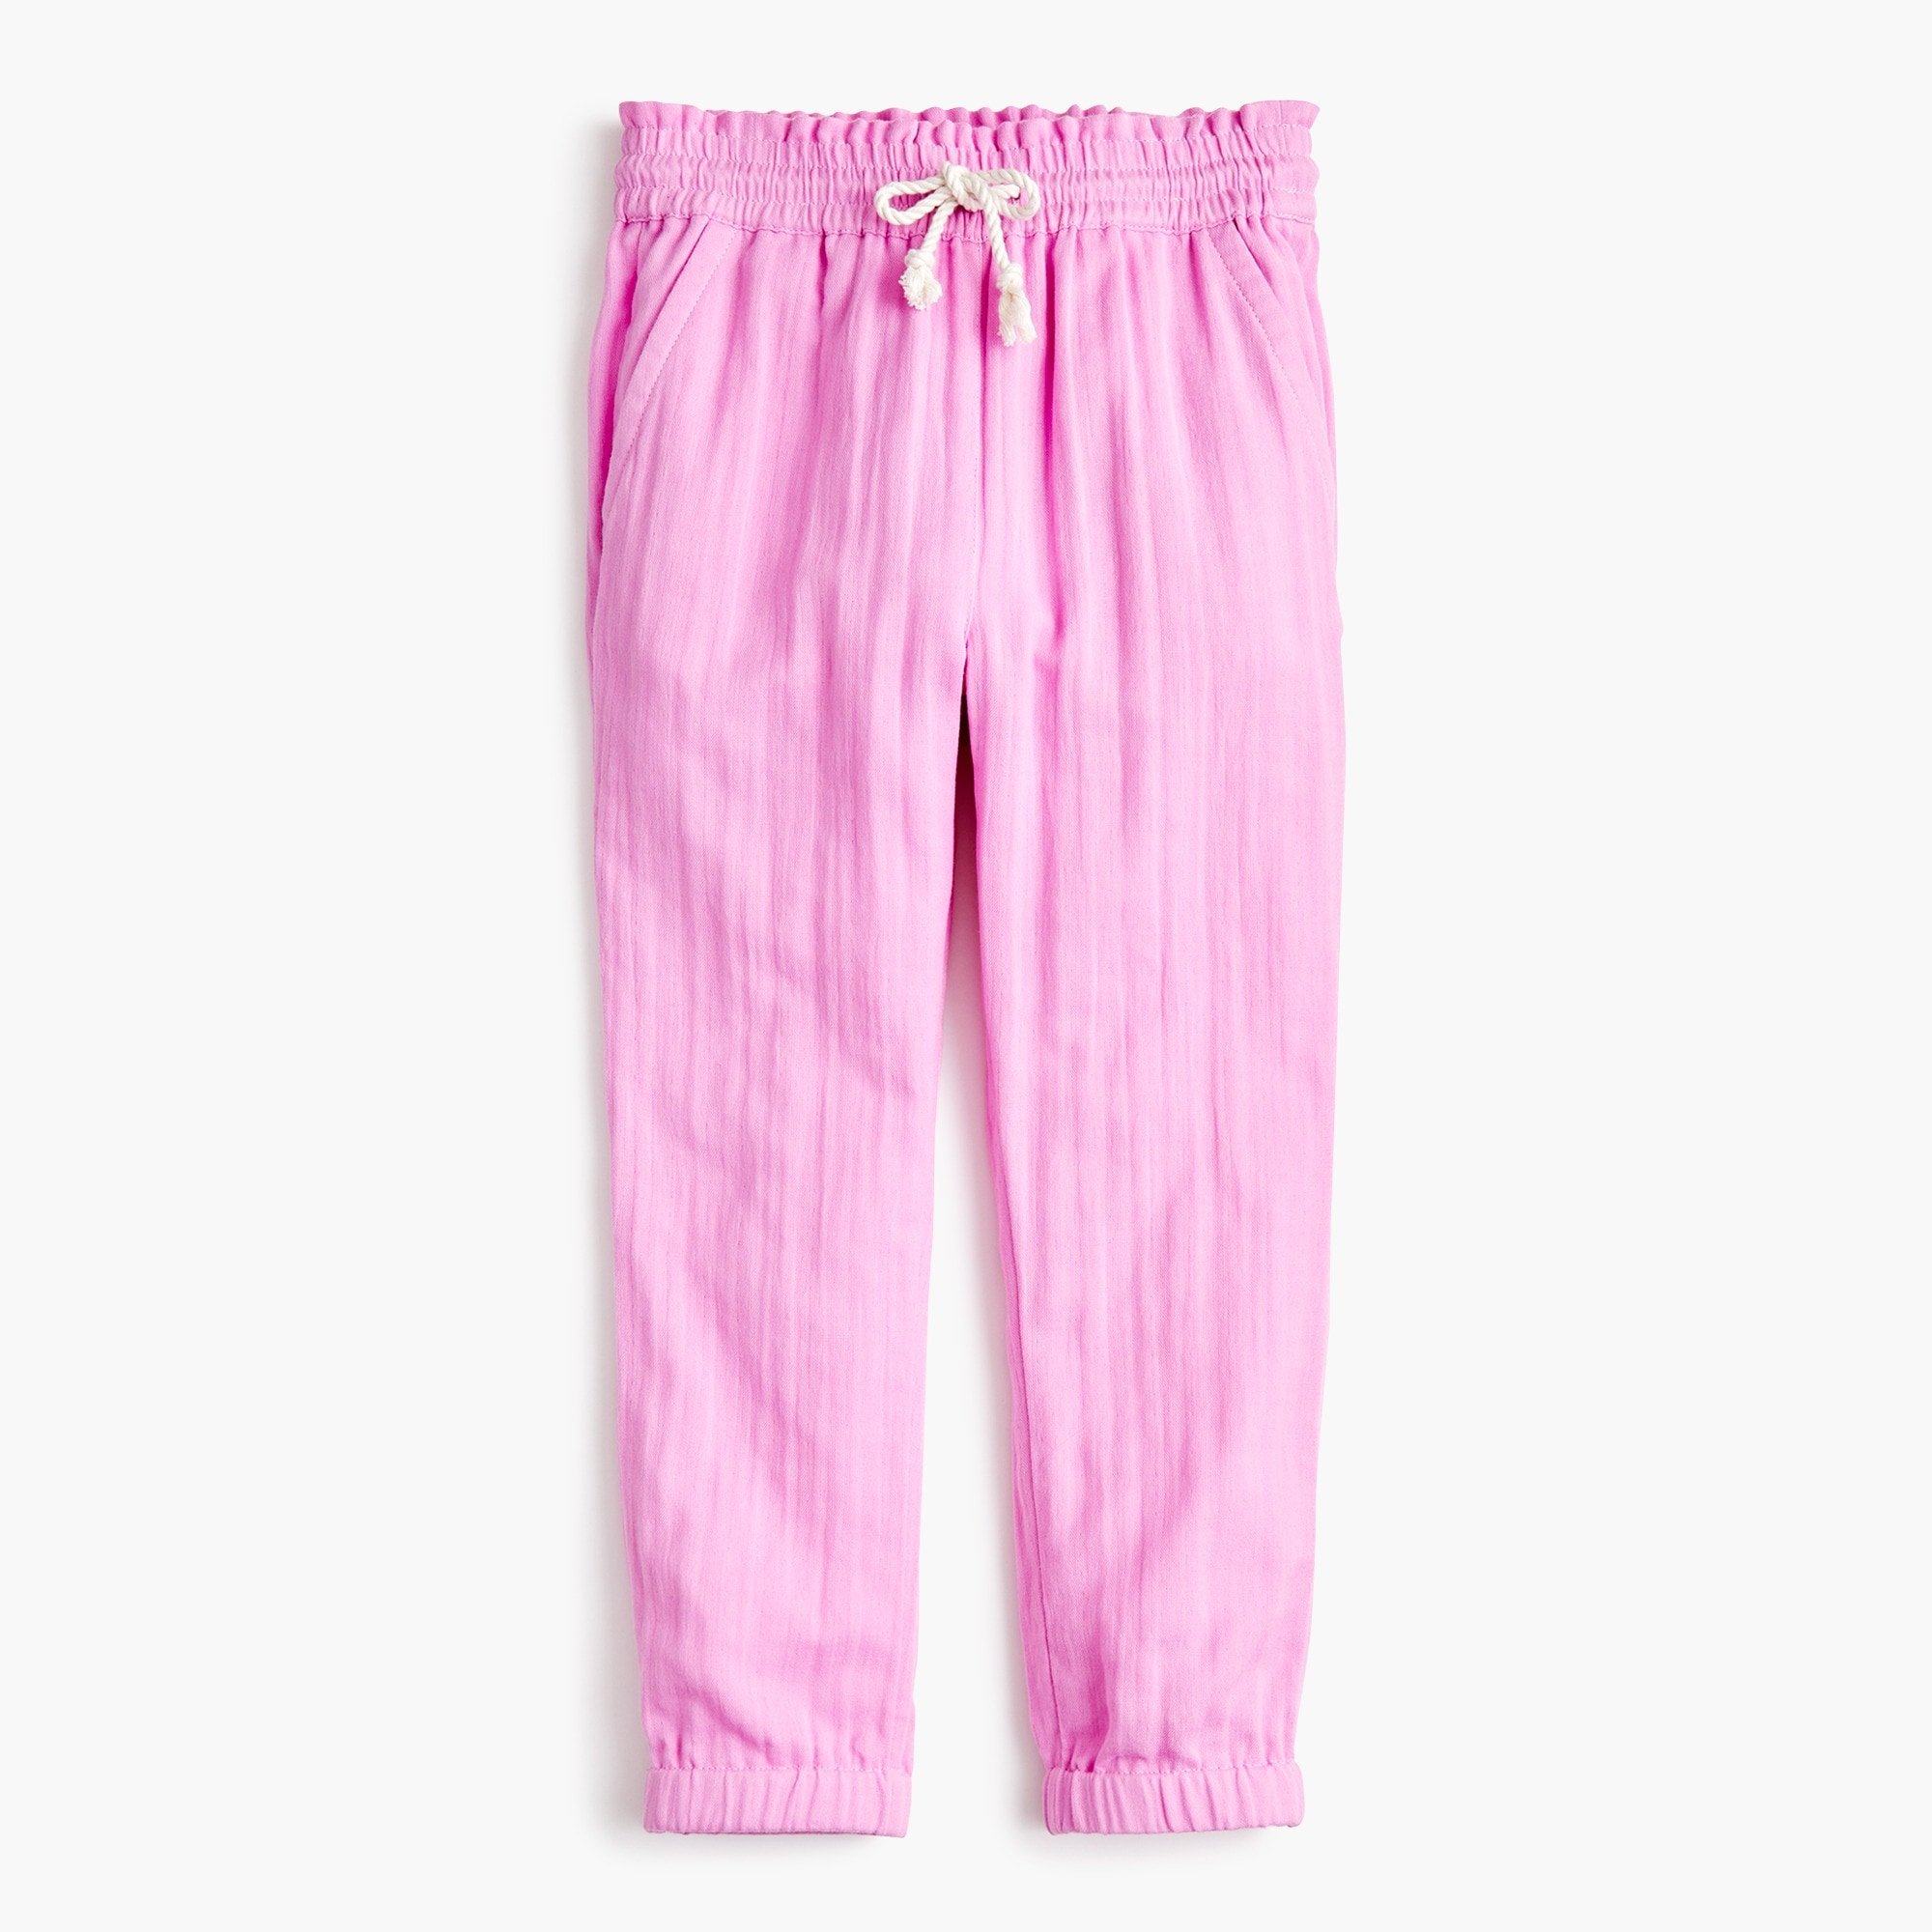 Image 1 for Girls' drawstring pant